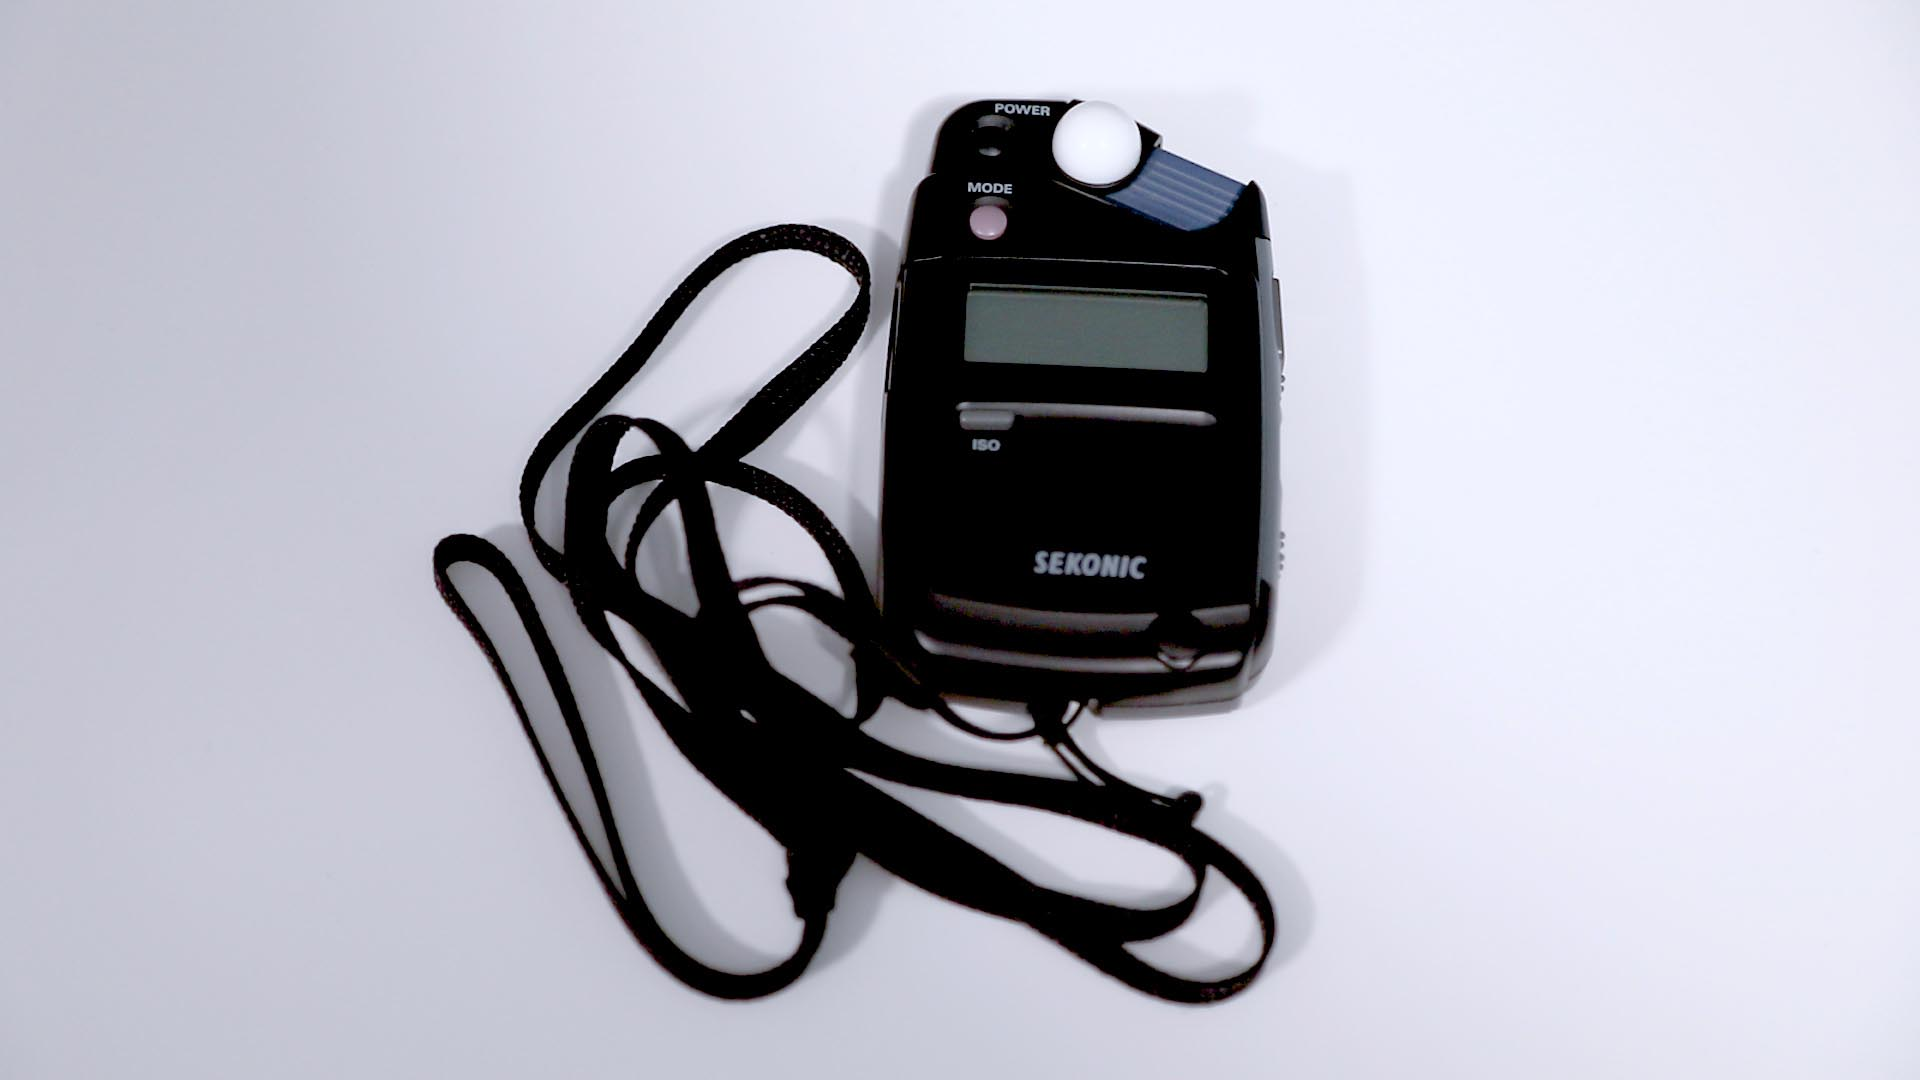 Example of a light meter.